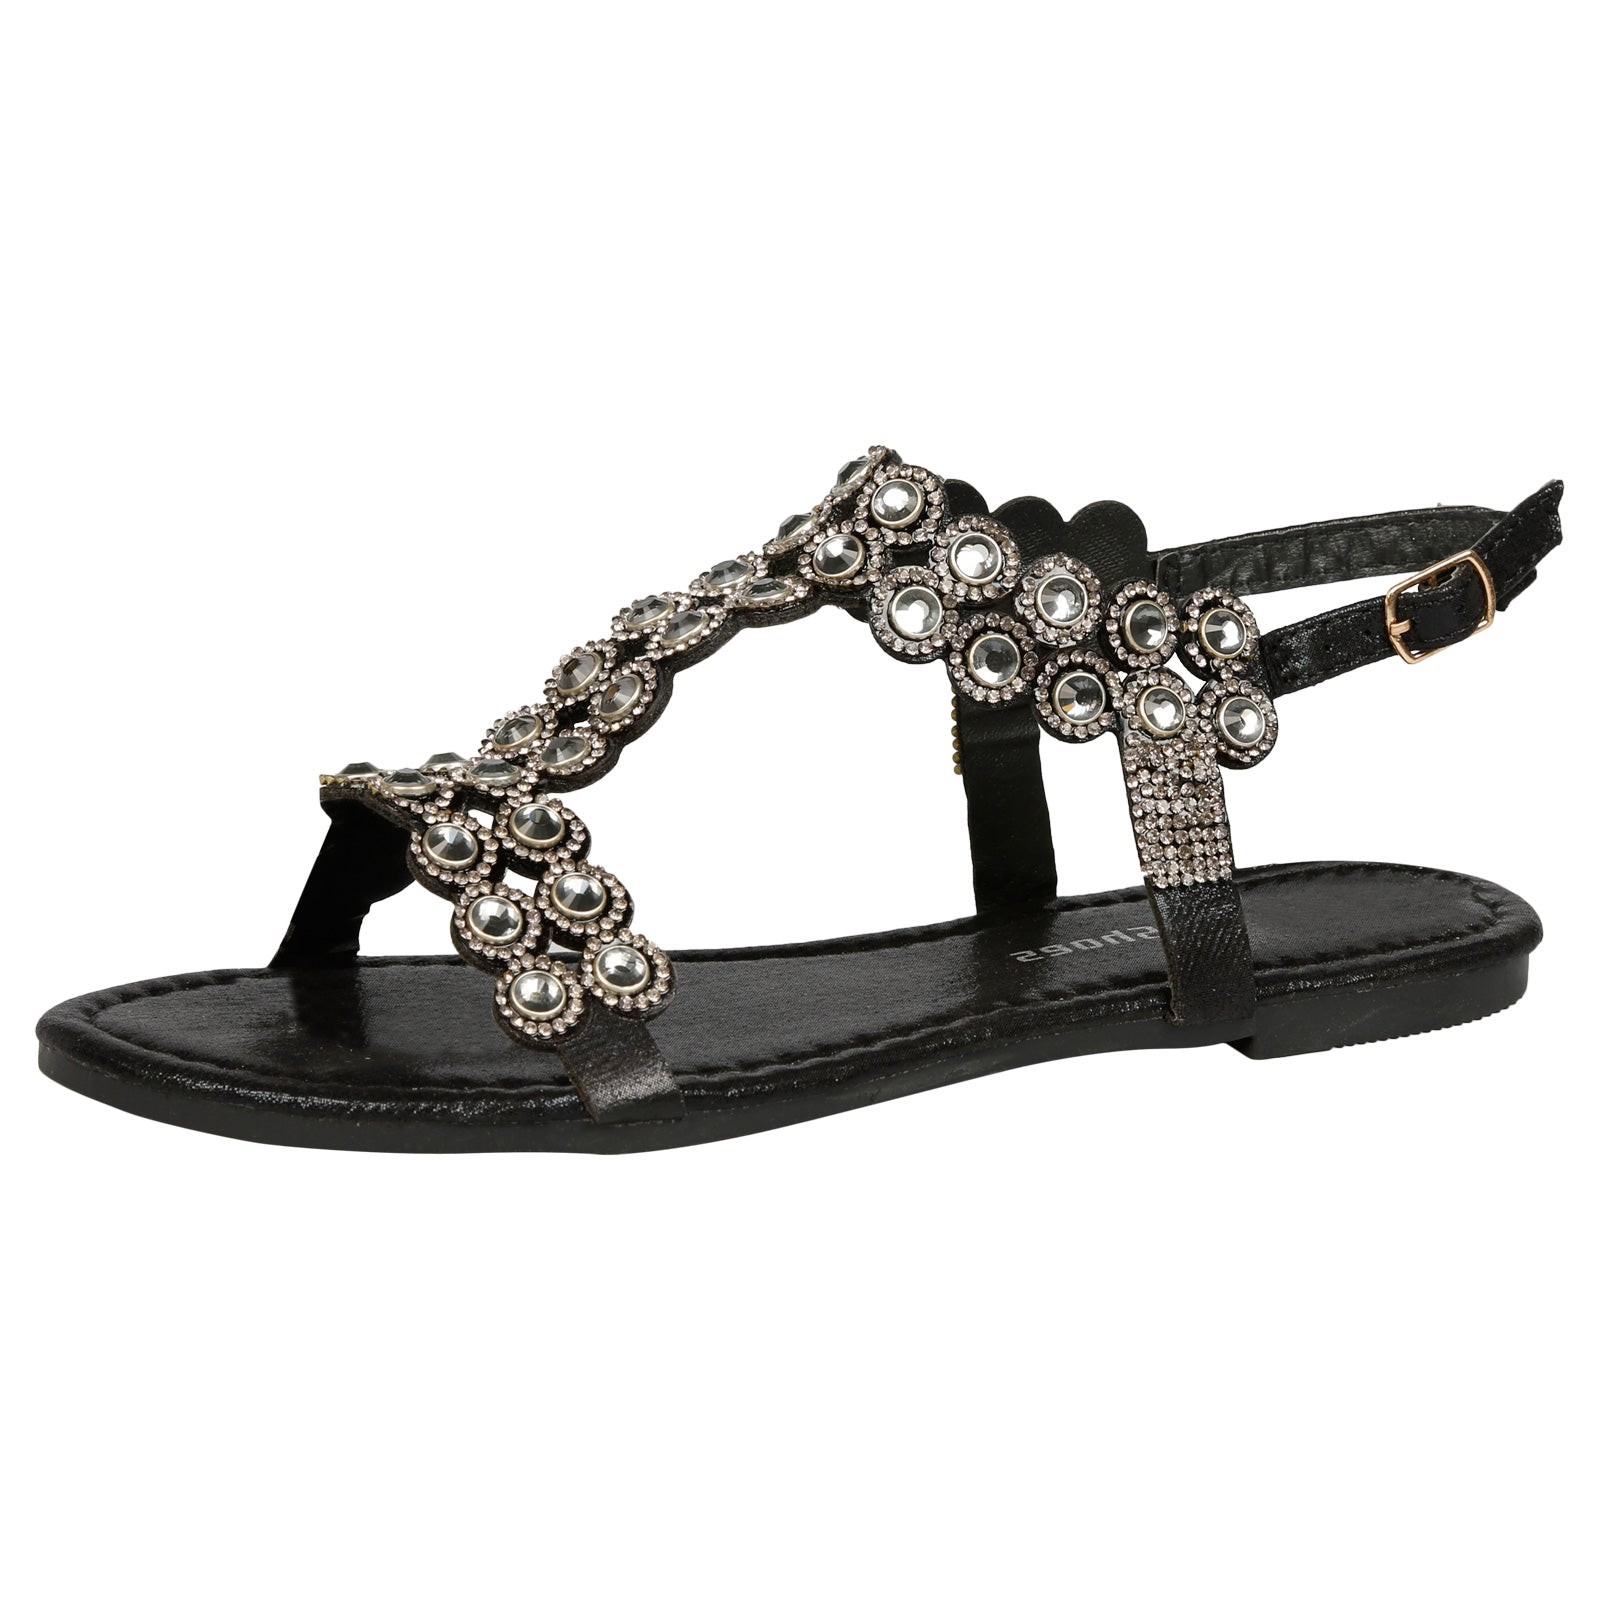 Abigail Diamante T-Bar Sandals in Black - Feet First Fashion